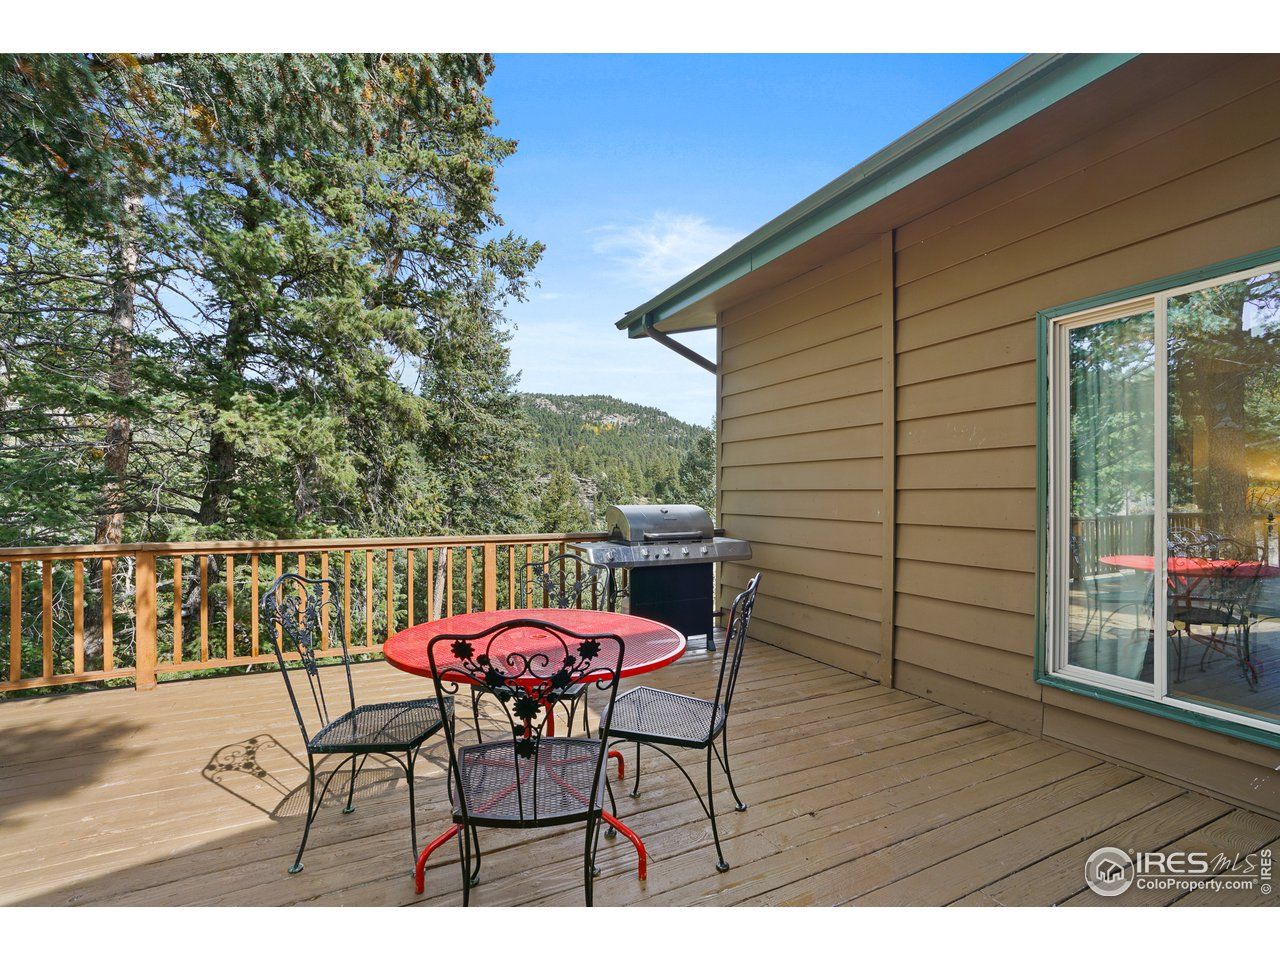 or Head Out to the Deck to Enjoy Sunshine and Views